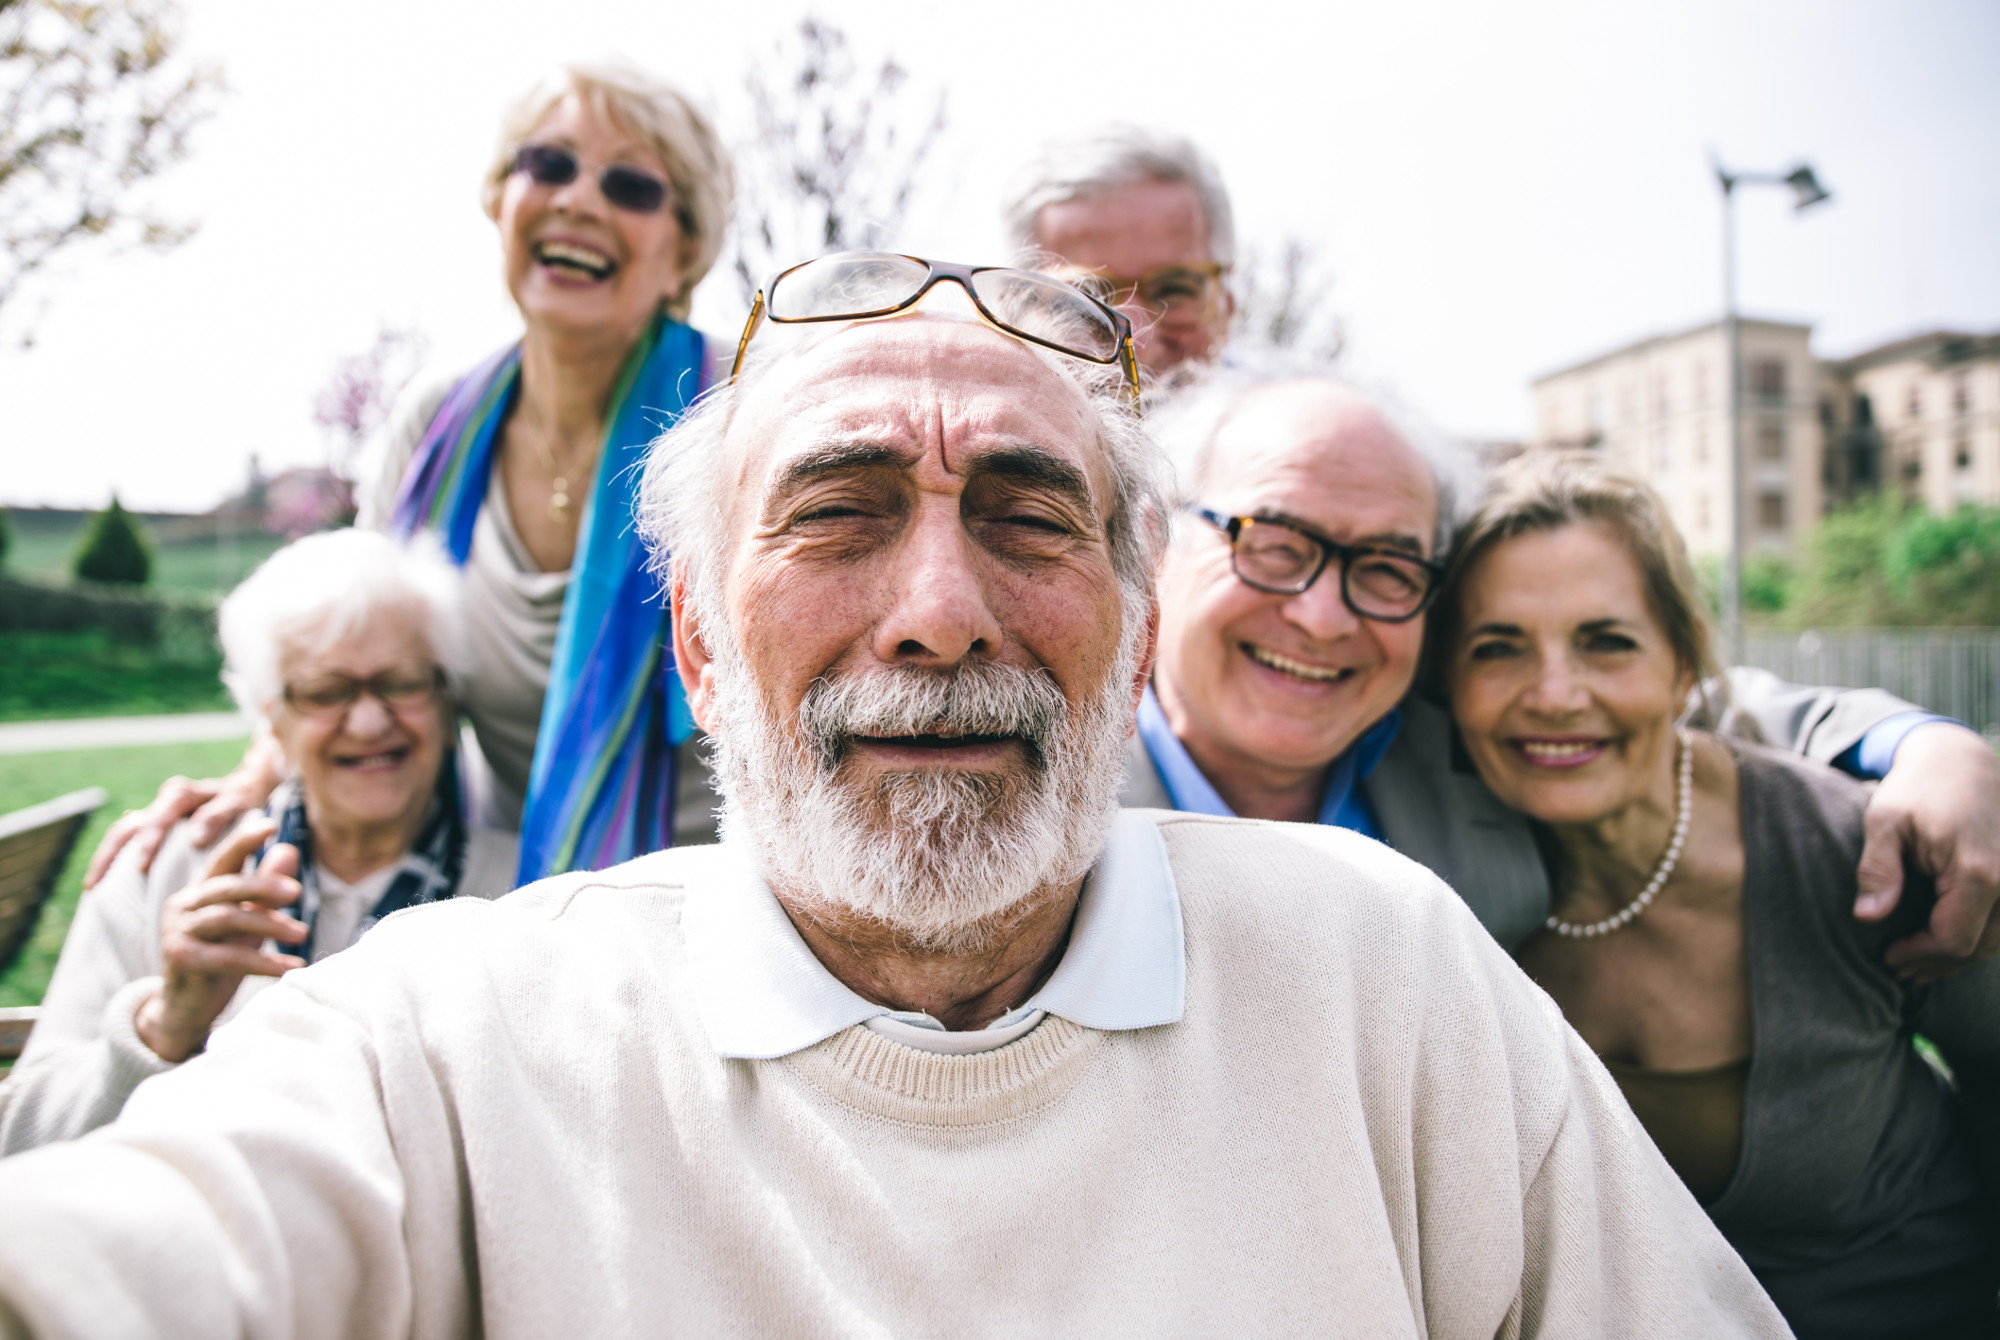 Trent Dementia image: Life with Dementia project - photo of group of men and women taking a selfie